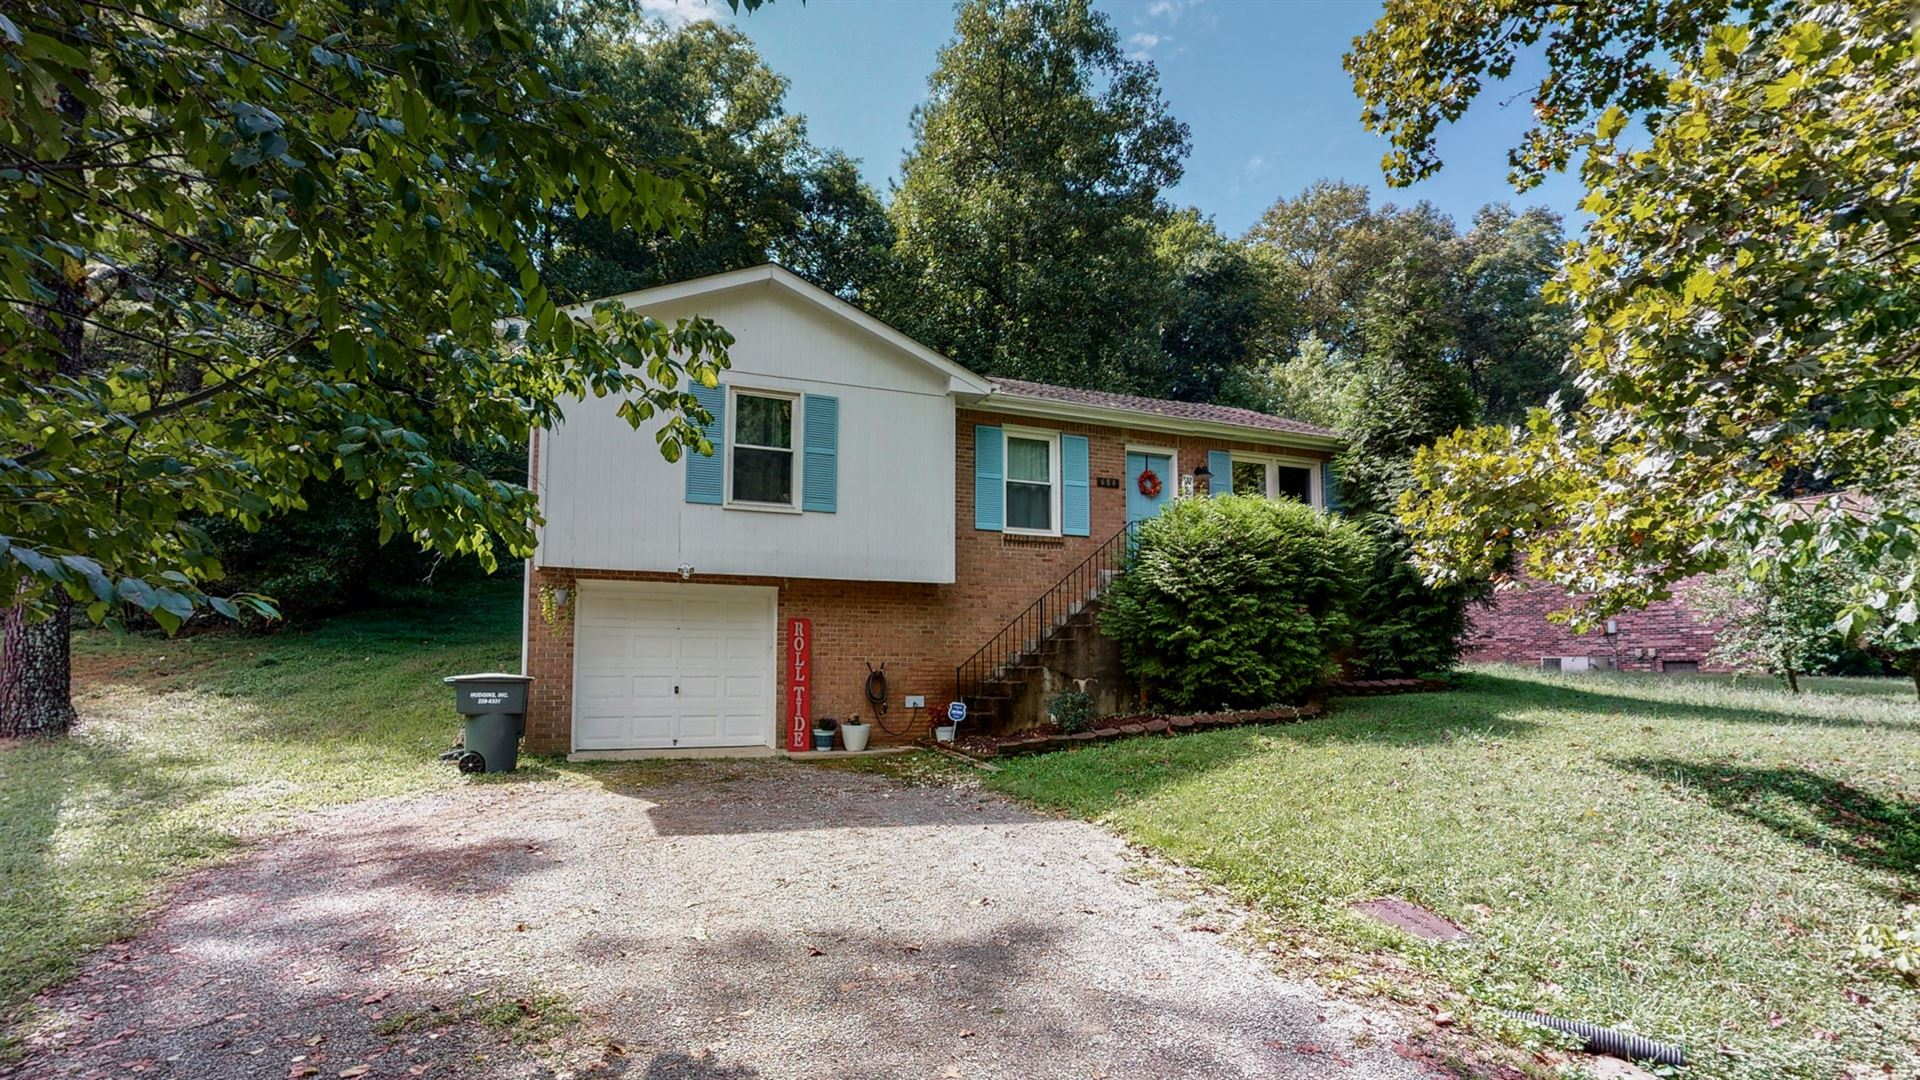 Photo of 684 Frankfort Dr, Hermitage, TN 37076 (MLS # 2292465)